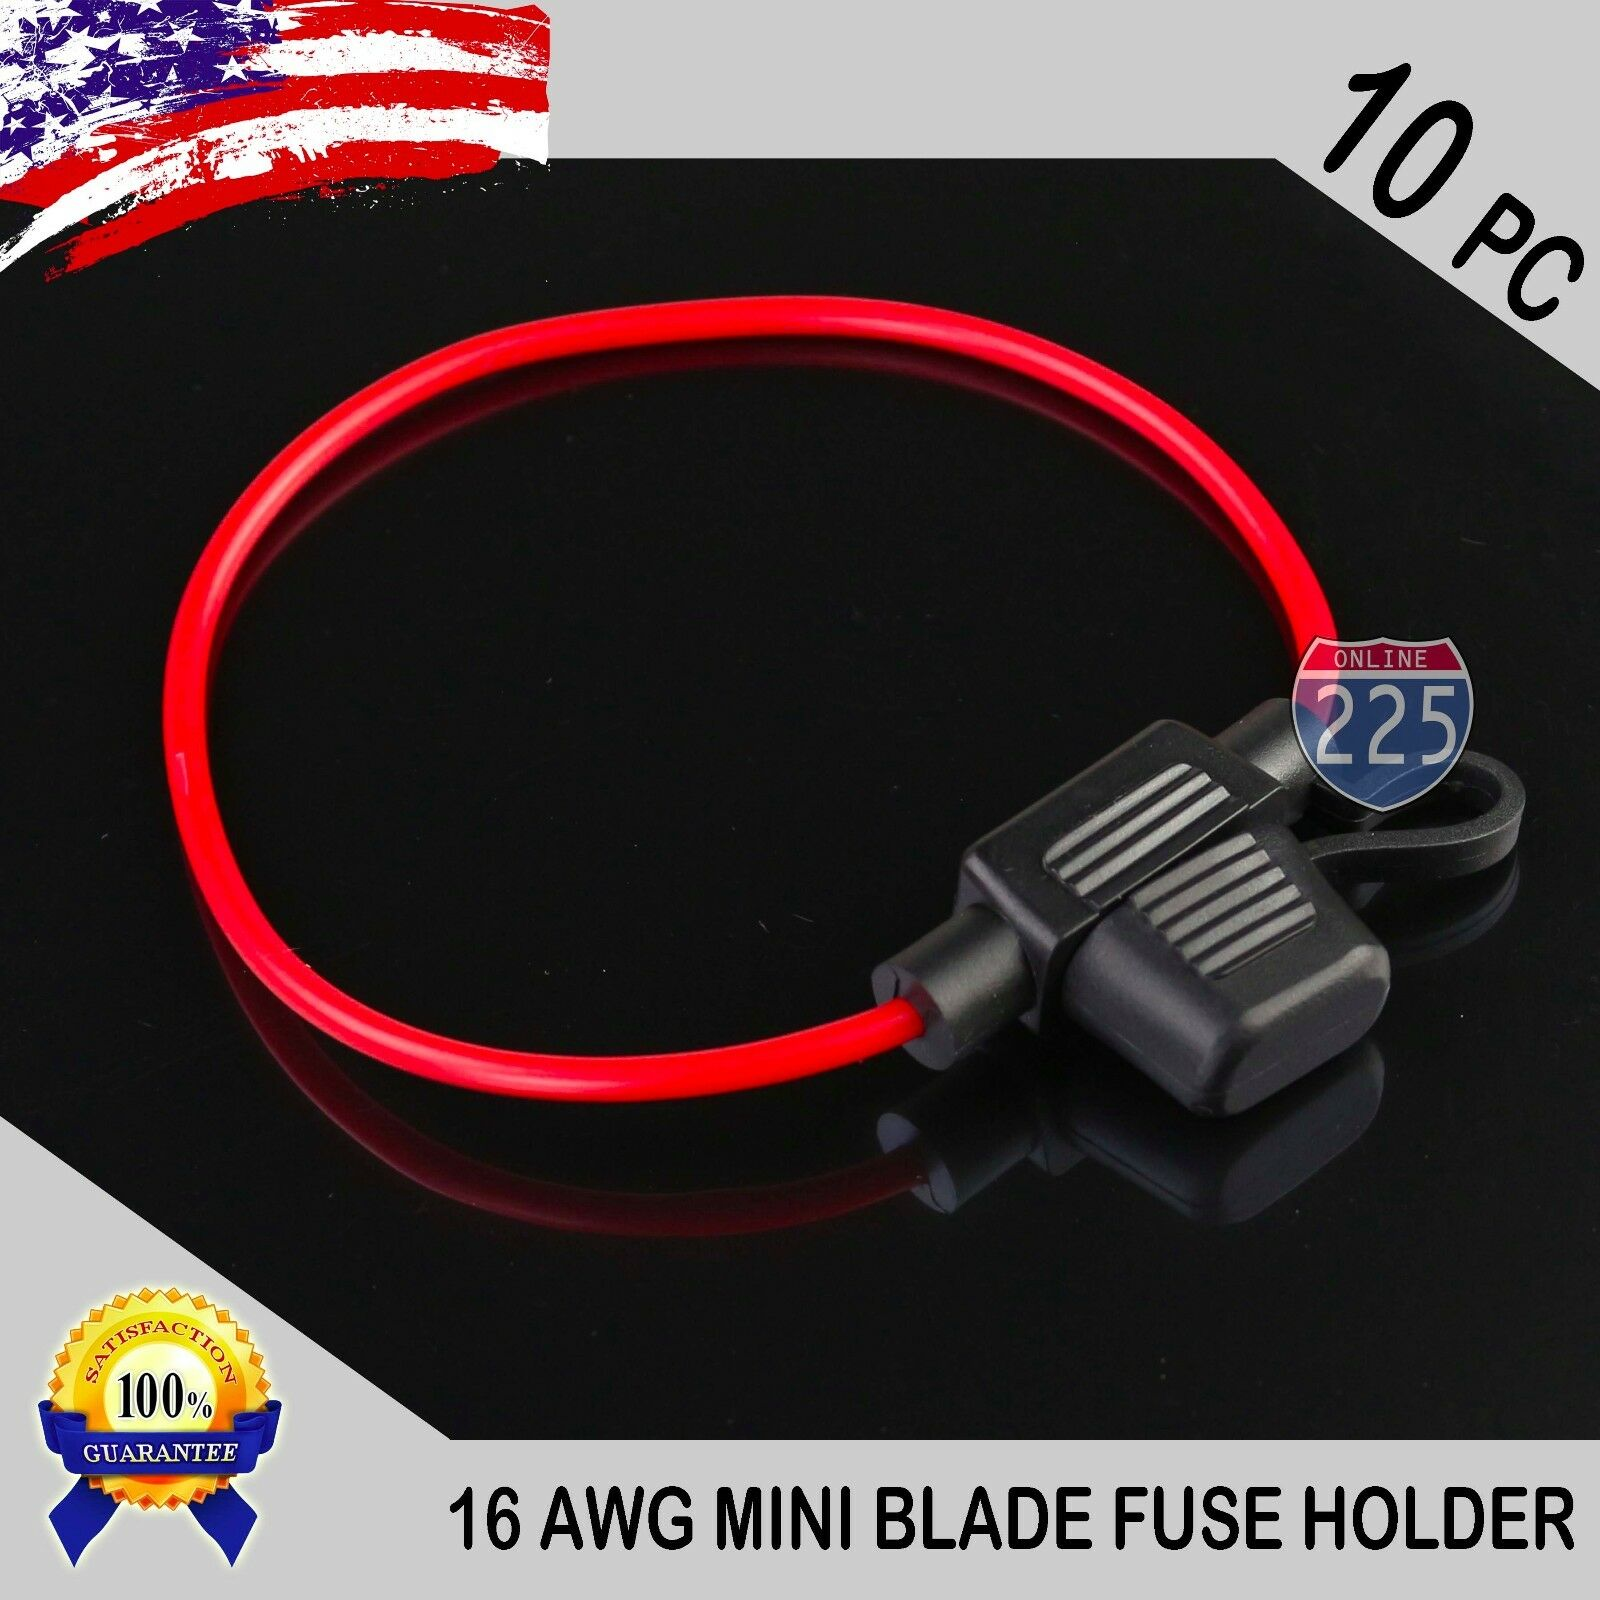 10 Pack 16 Gauge Apm Atm Mini Blade Inline Fuse Holder 100 Ofc Add A Circuit Tap 12v 1 X Free Copper Of 1free Shipping